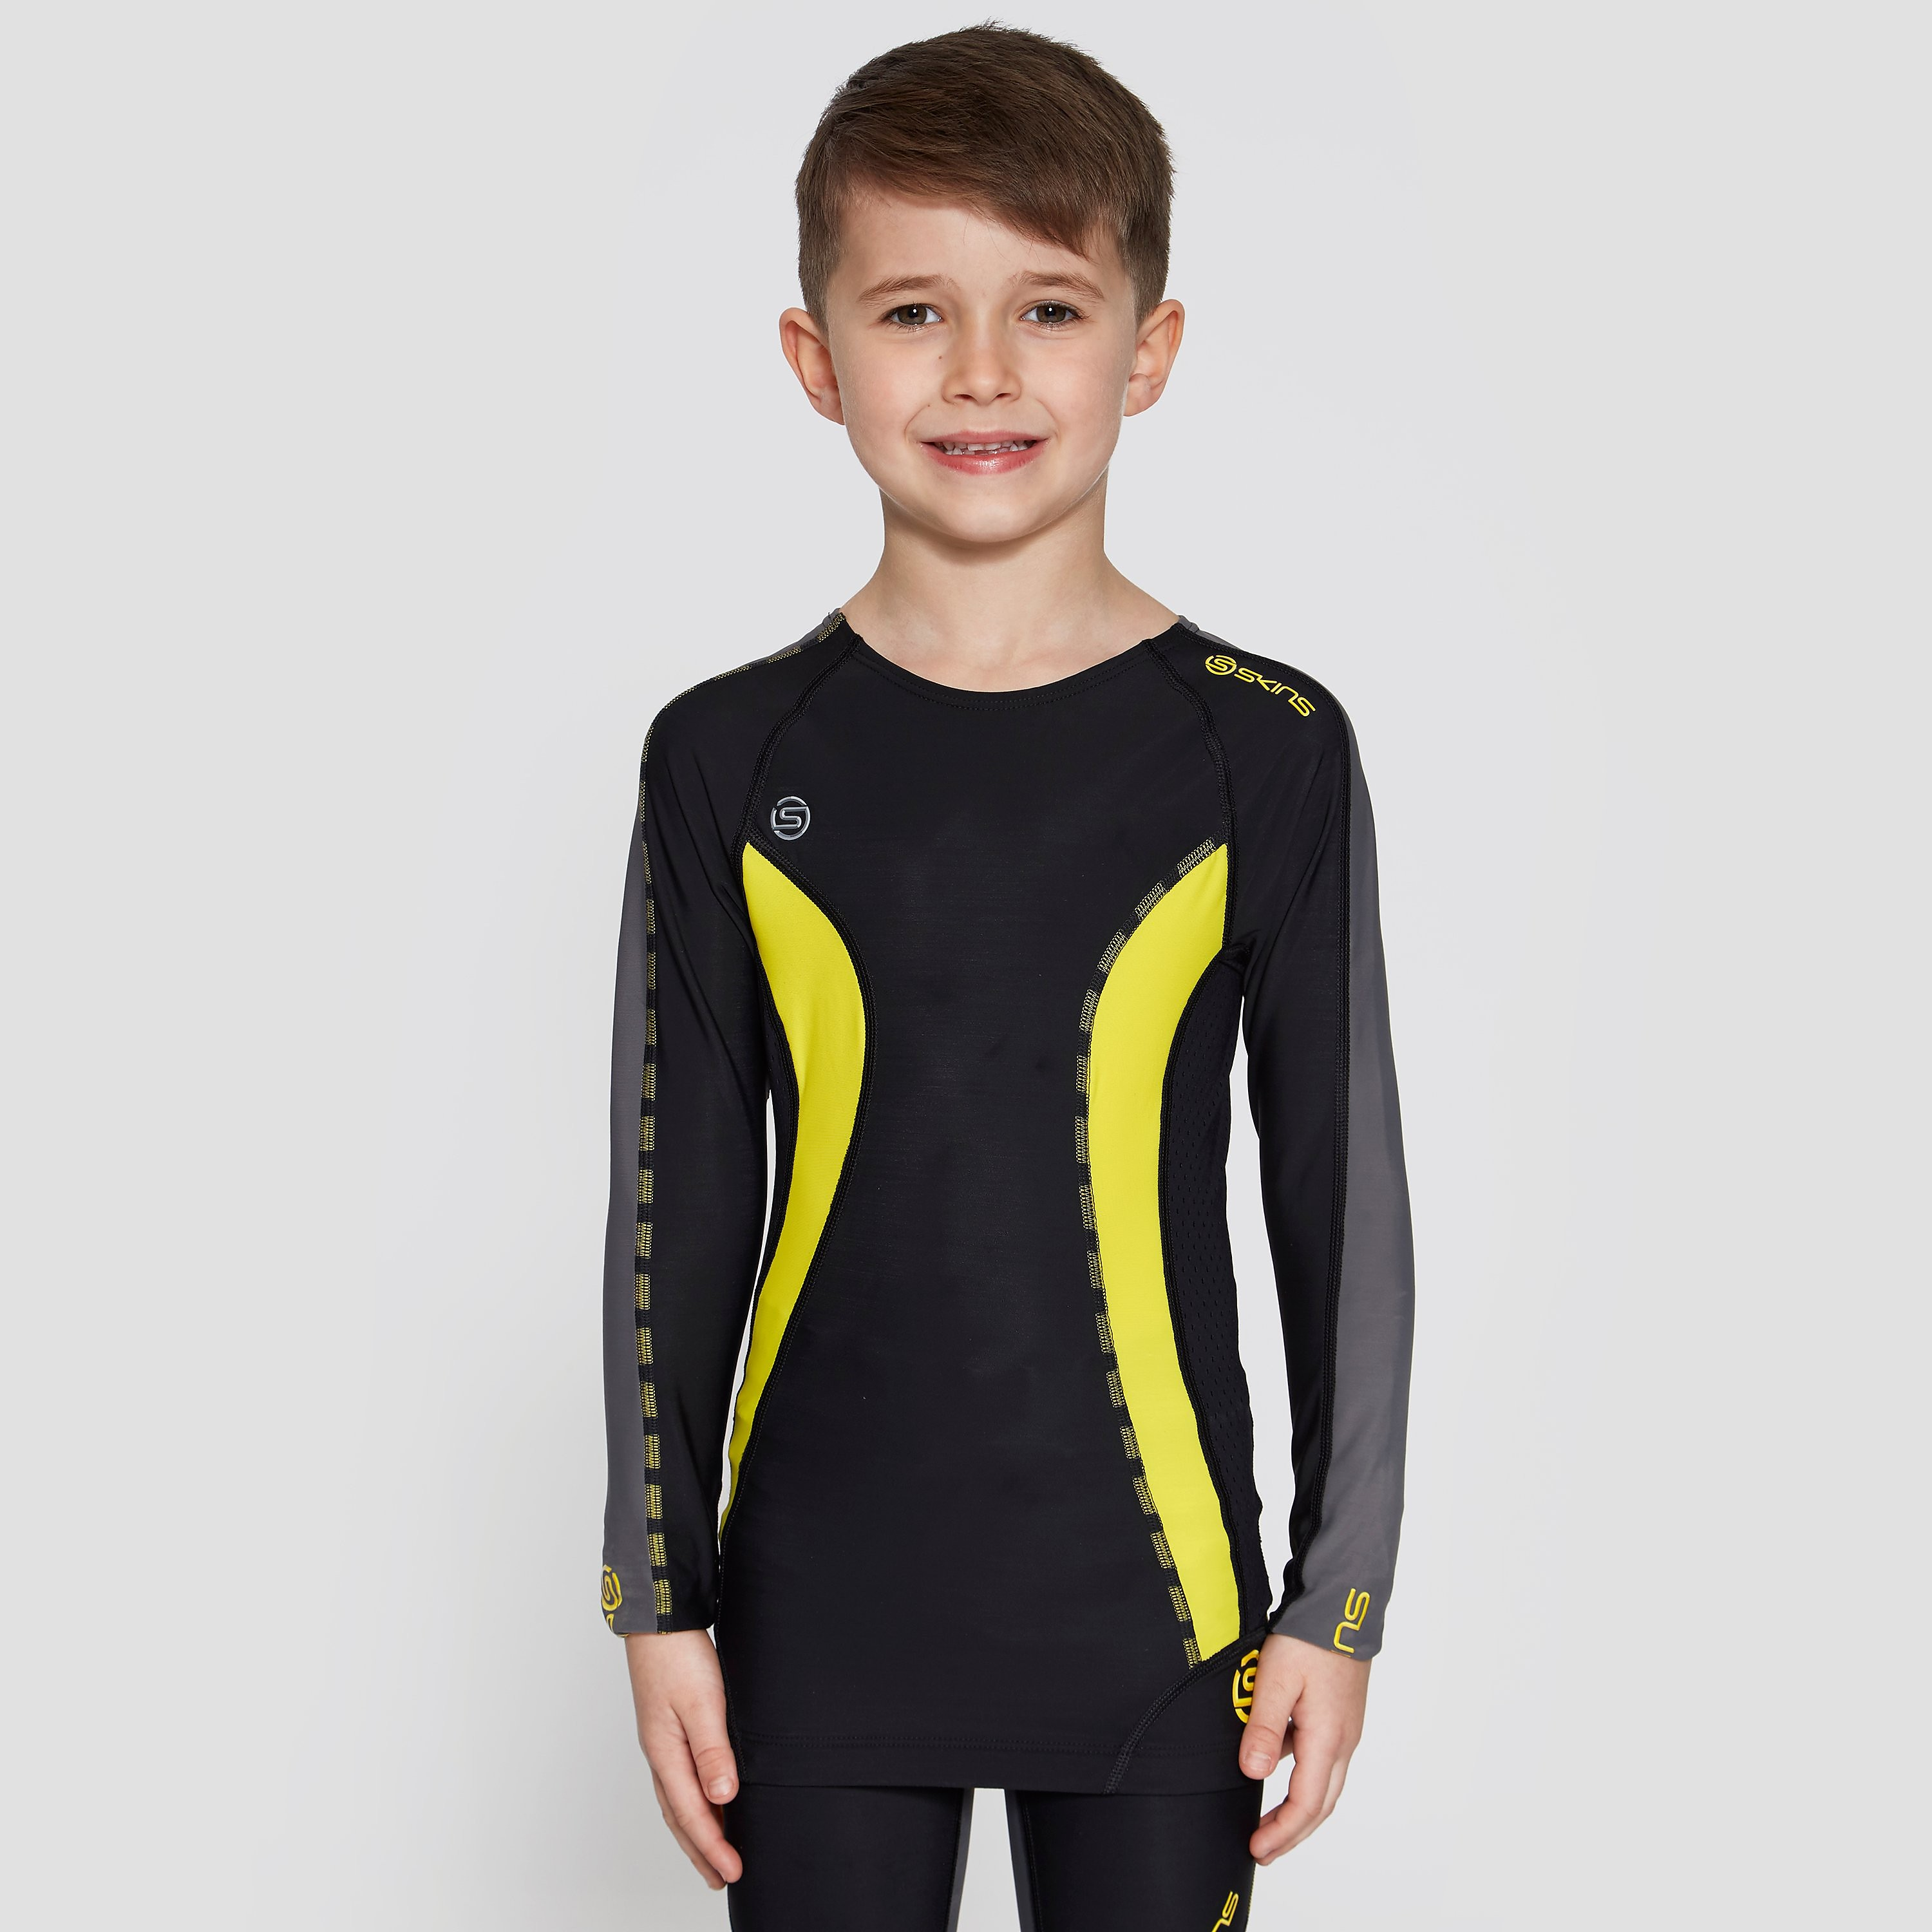 Skins JUNIOR LONG SLEEVE COMPRESSION TOP